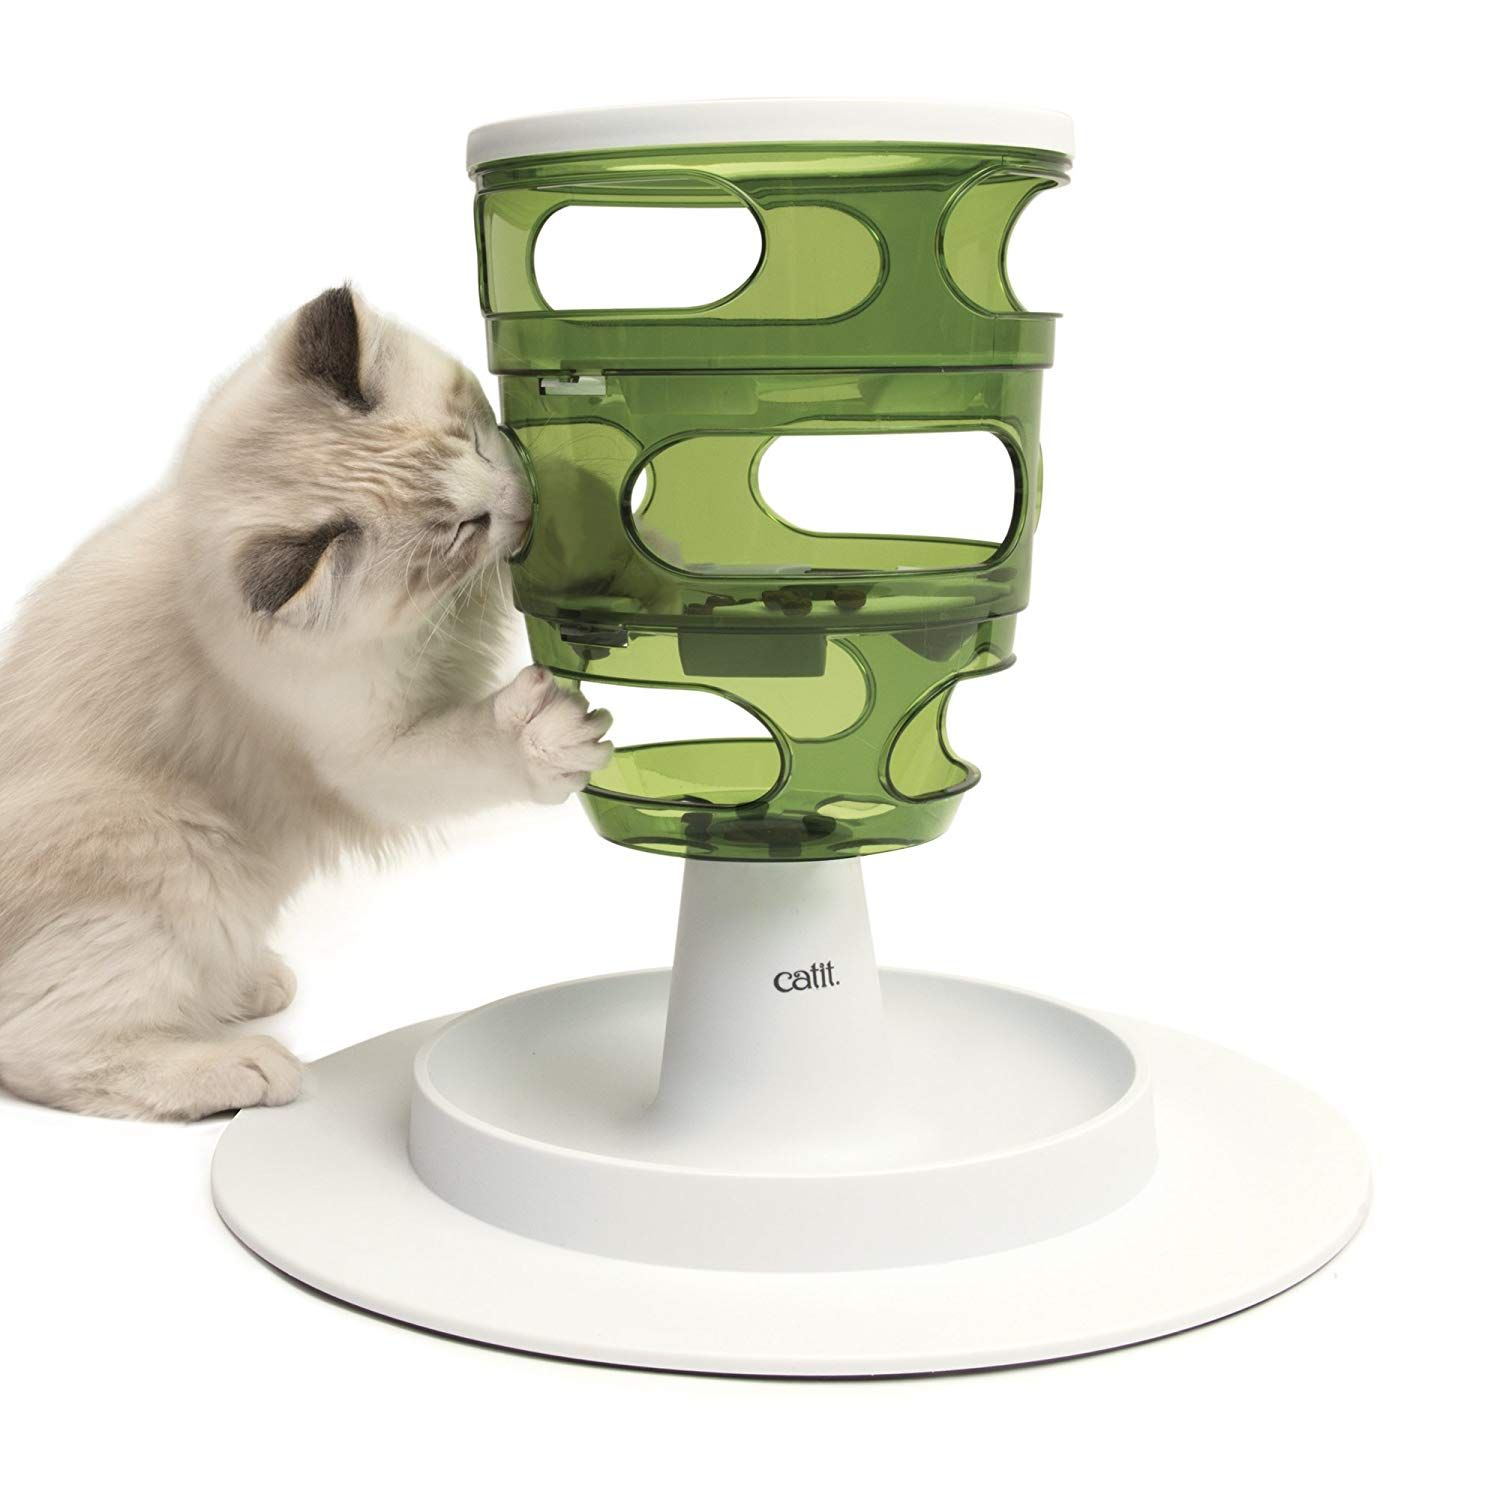 20 Perrrrfect Gifts For Cat Lovers And Cats Cat Toys Interactive Cat Toys Cat Lover Gifts